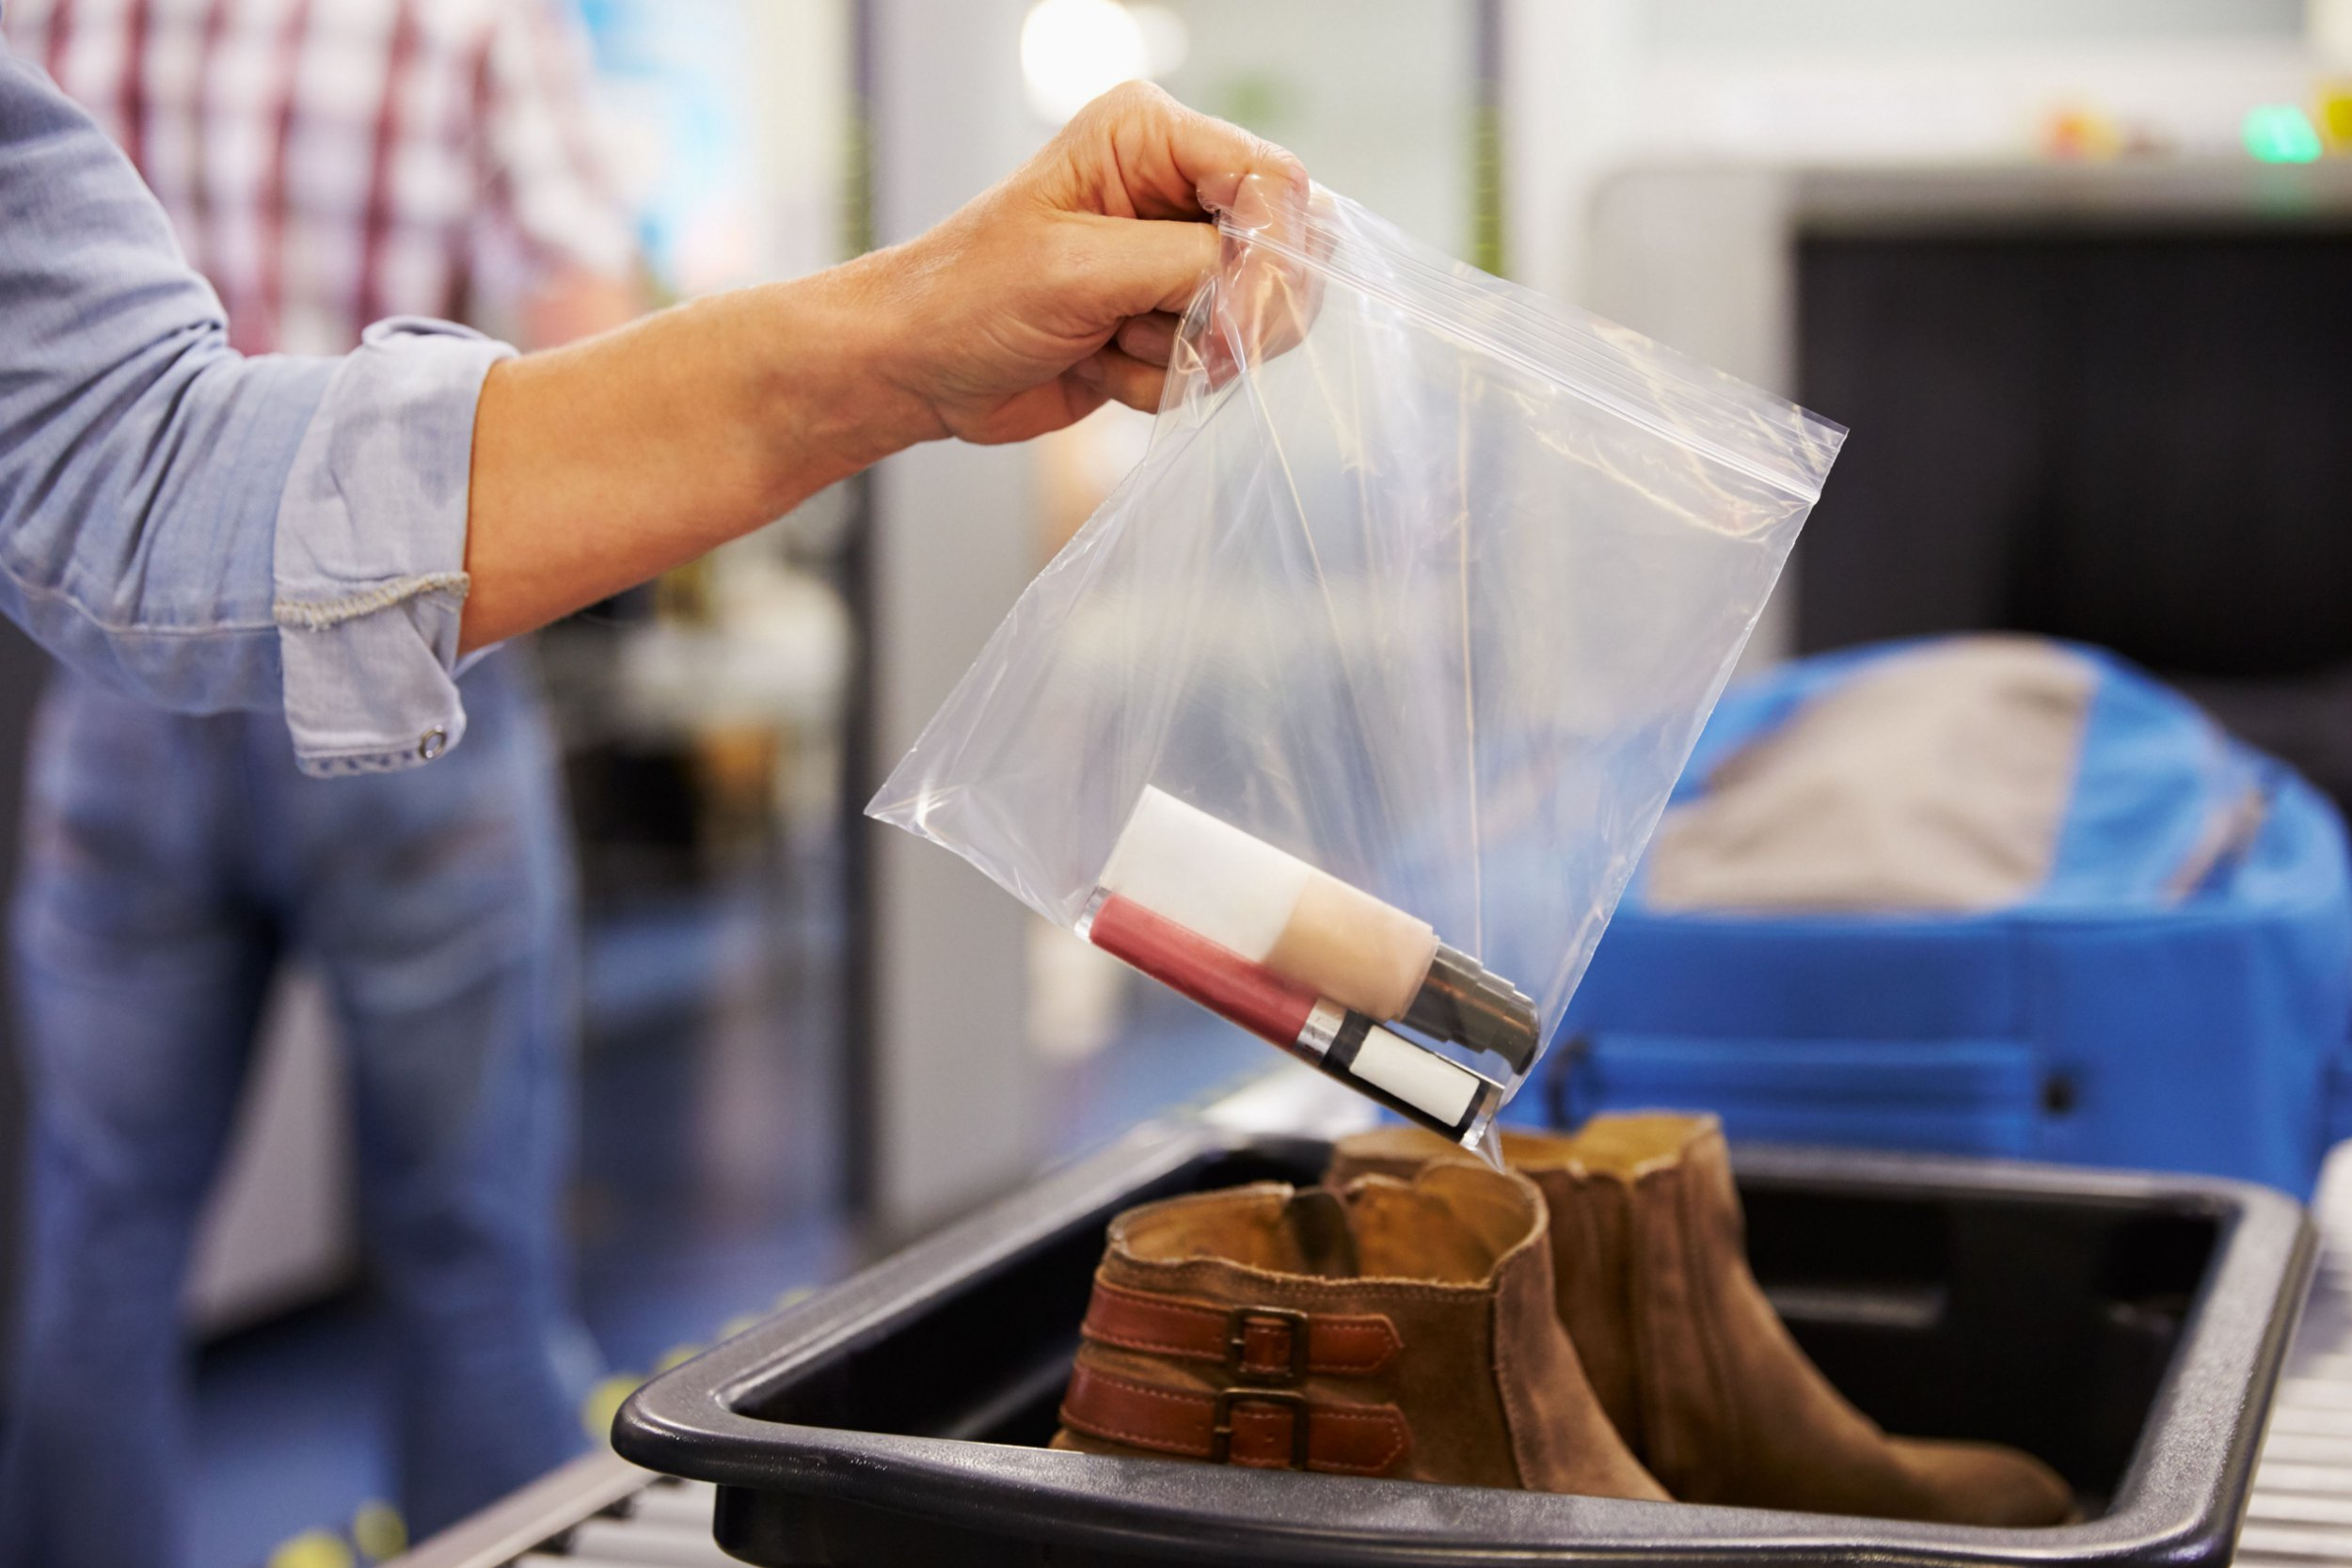 Liquid ban on flights could be about to end thanks to new airport scanners